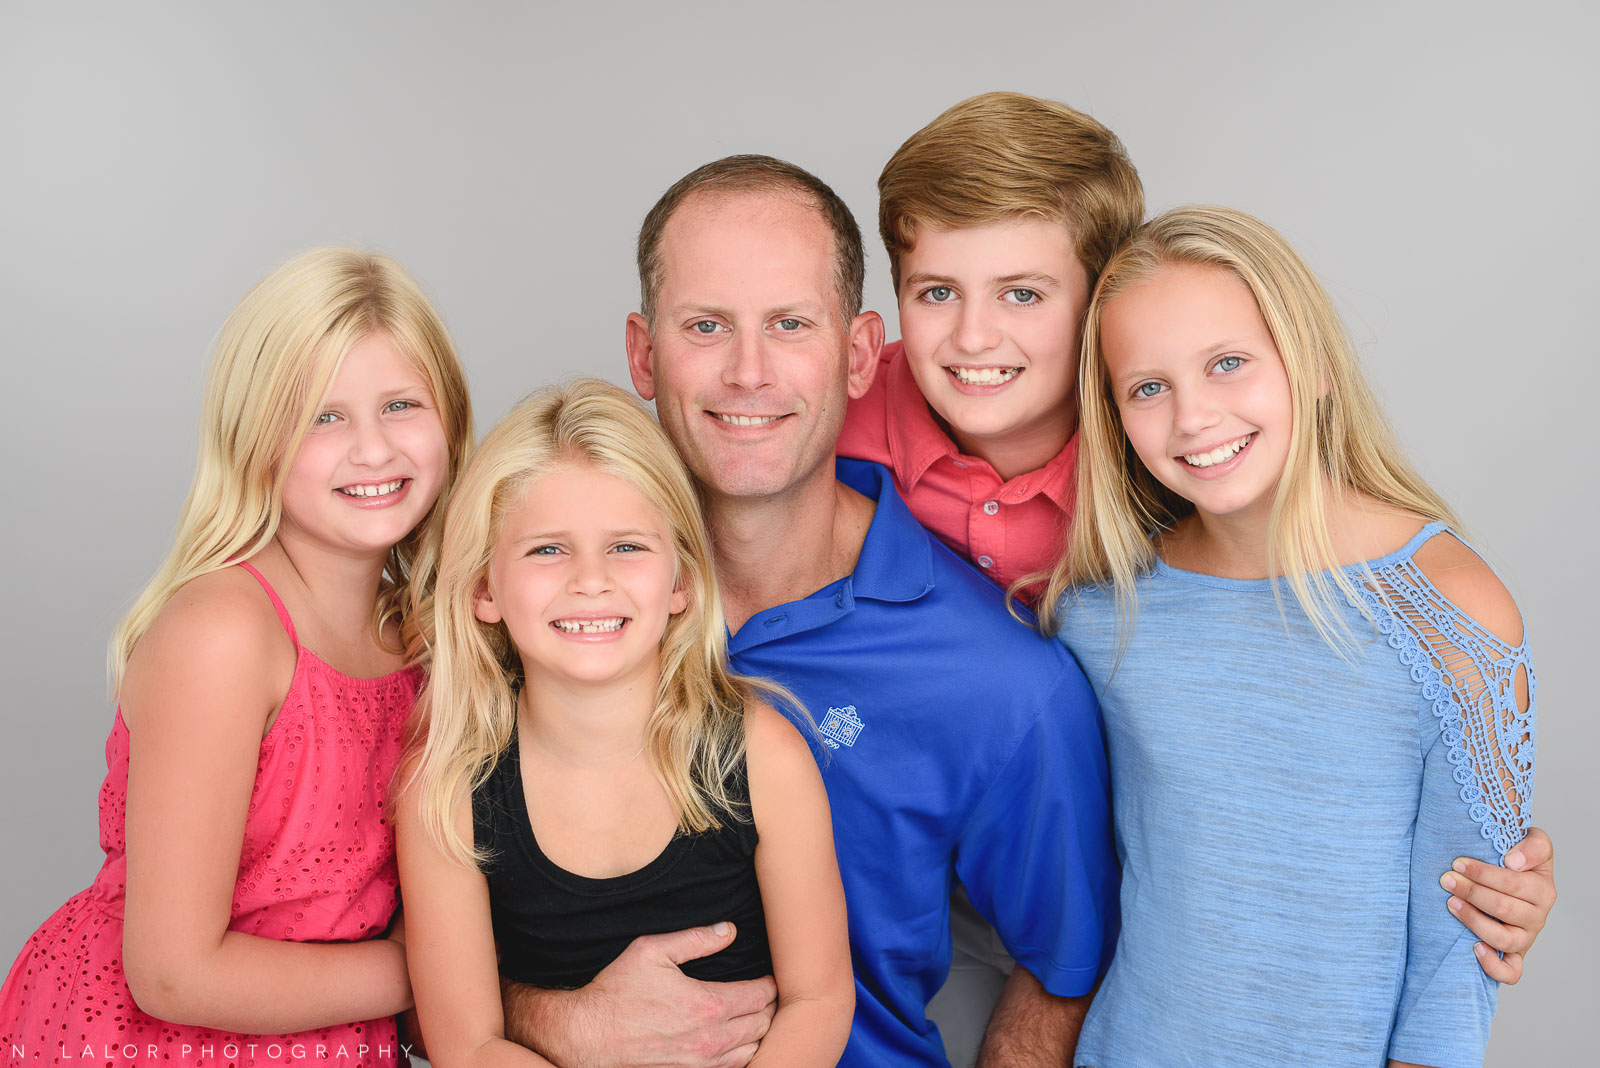 Dad with the kids. Studio family photo session with N. Lalor Photography in Greenwich, Connecticut.